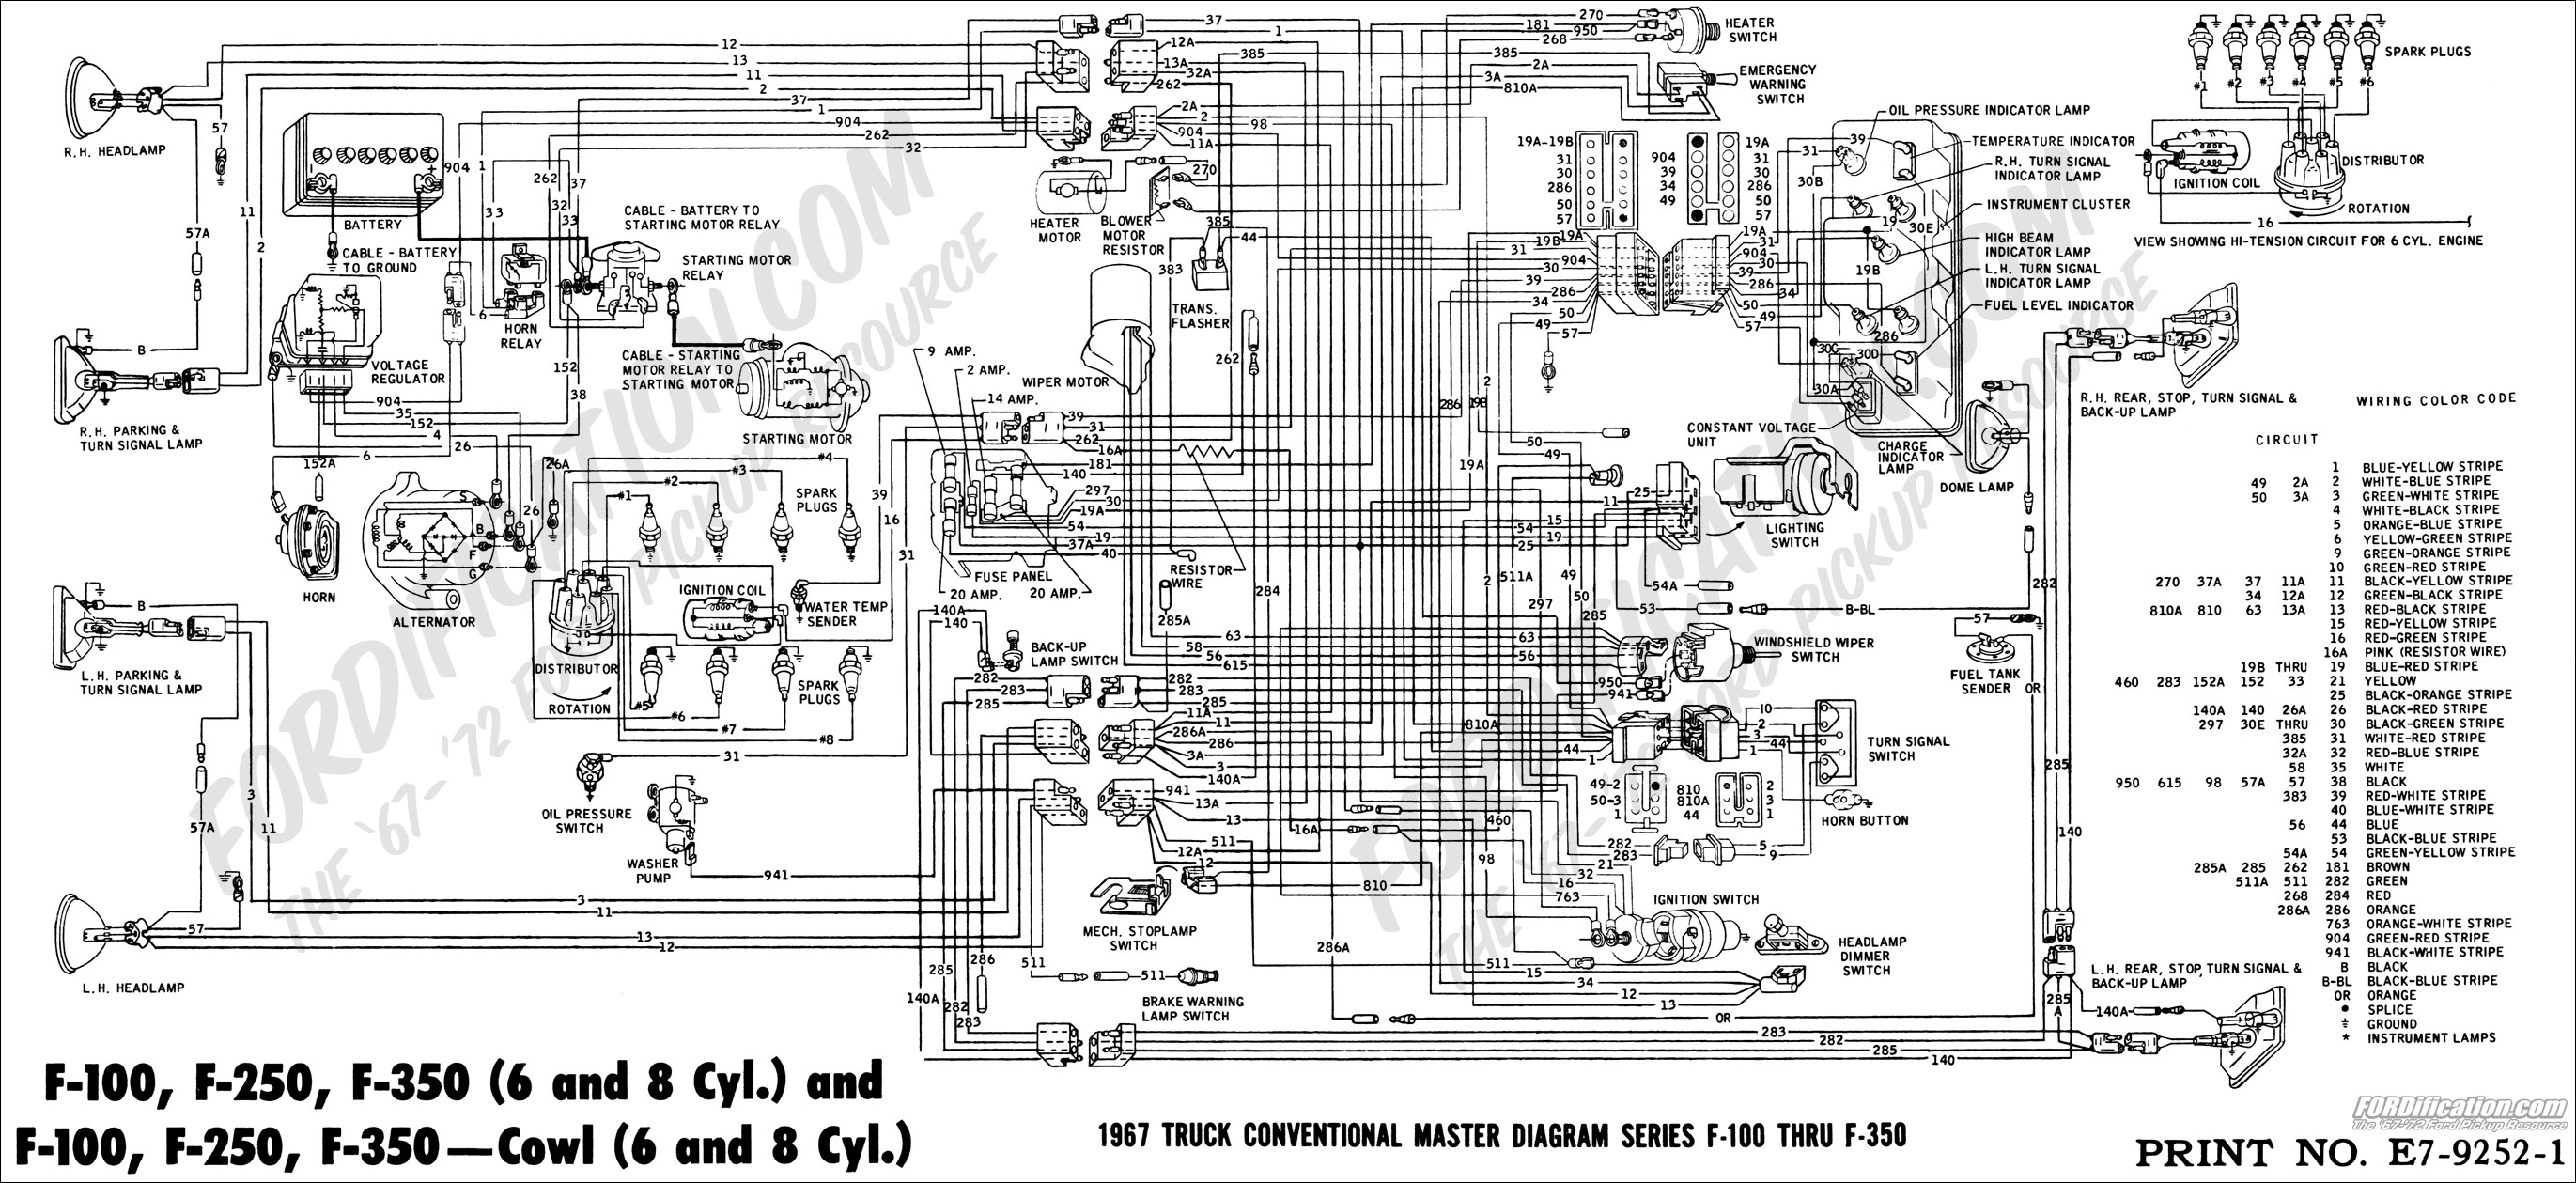 67masterdiagram 1999 ford radio wiring diagram turcolea com 1999 ford f350 radio wiring diagram at bayanpartner.co